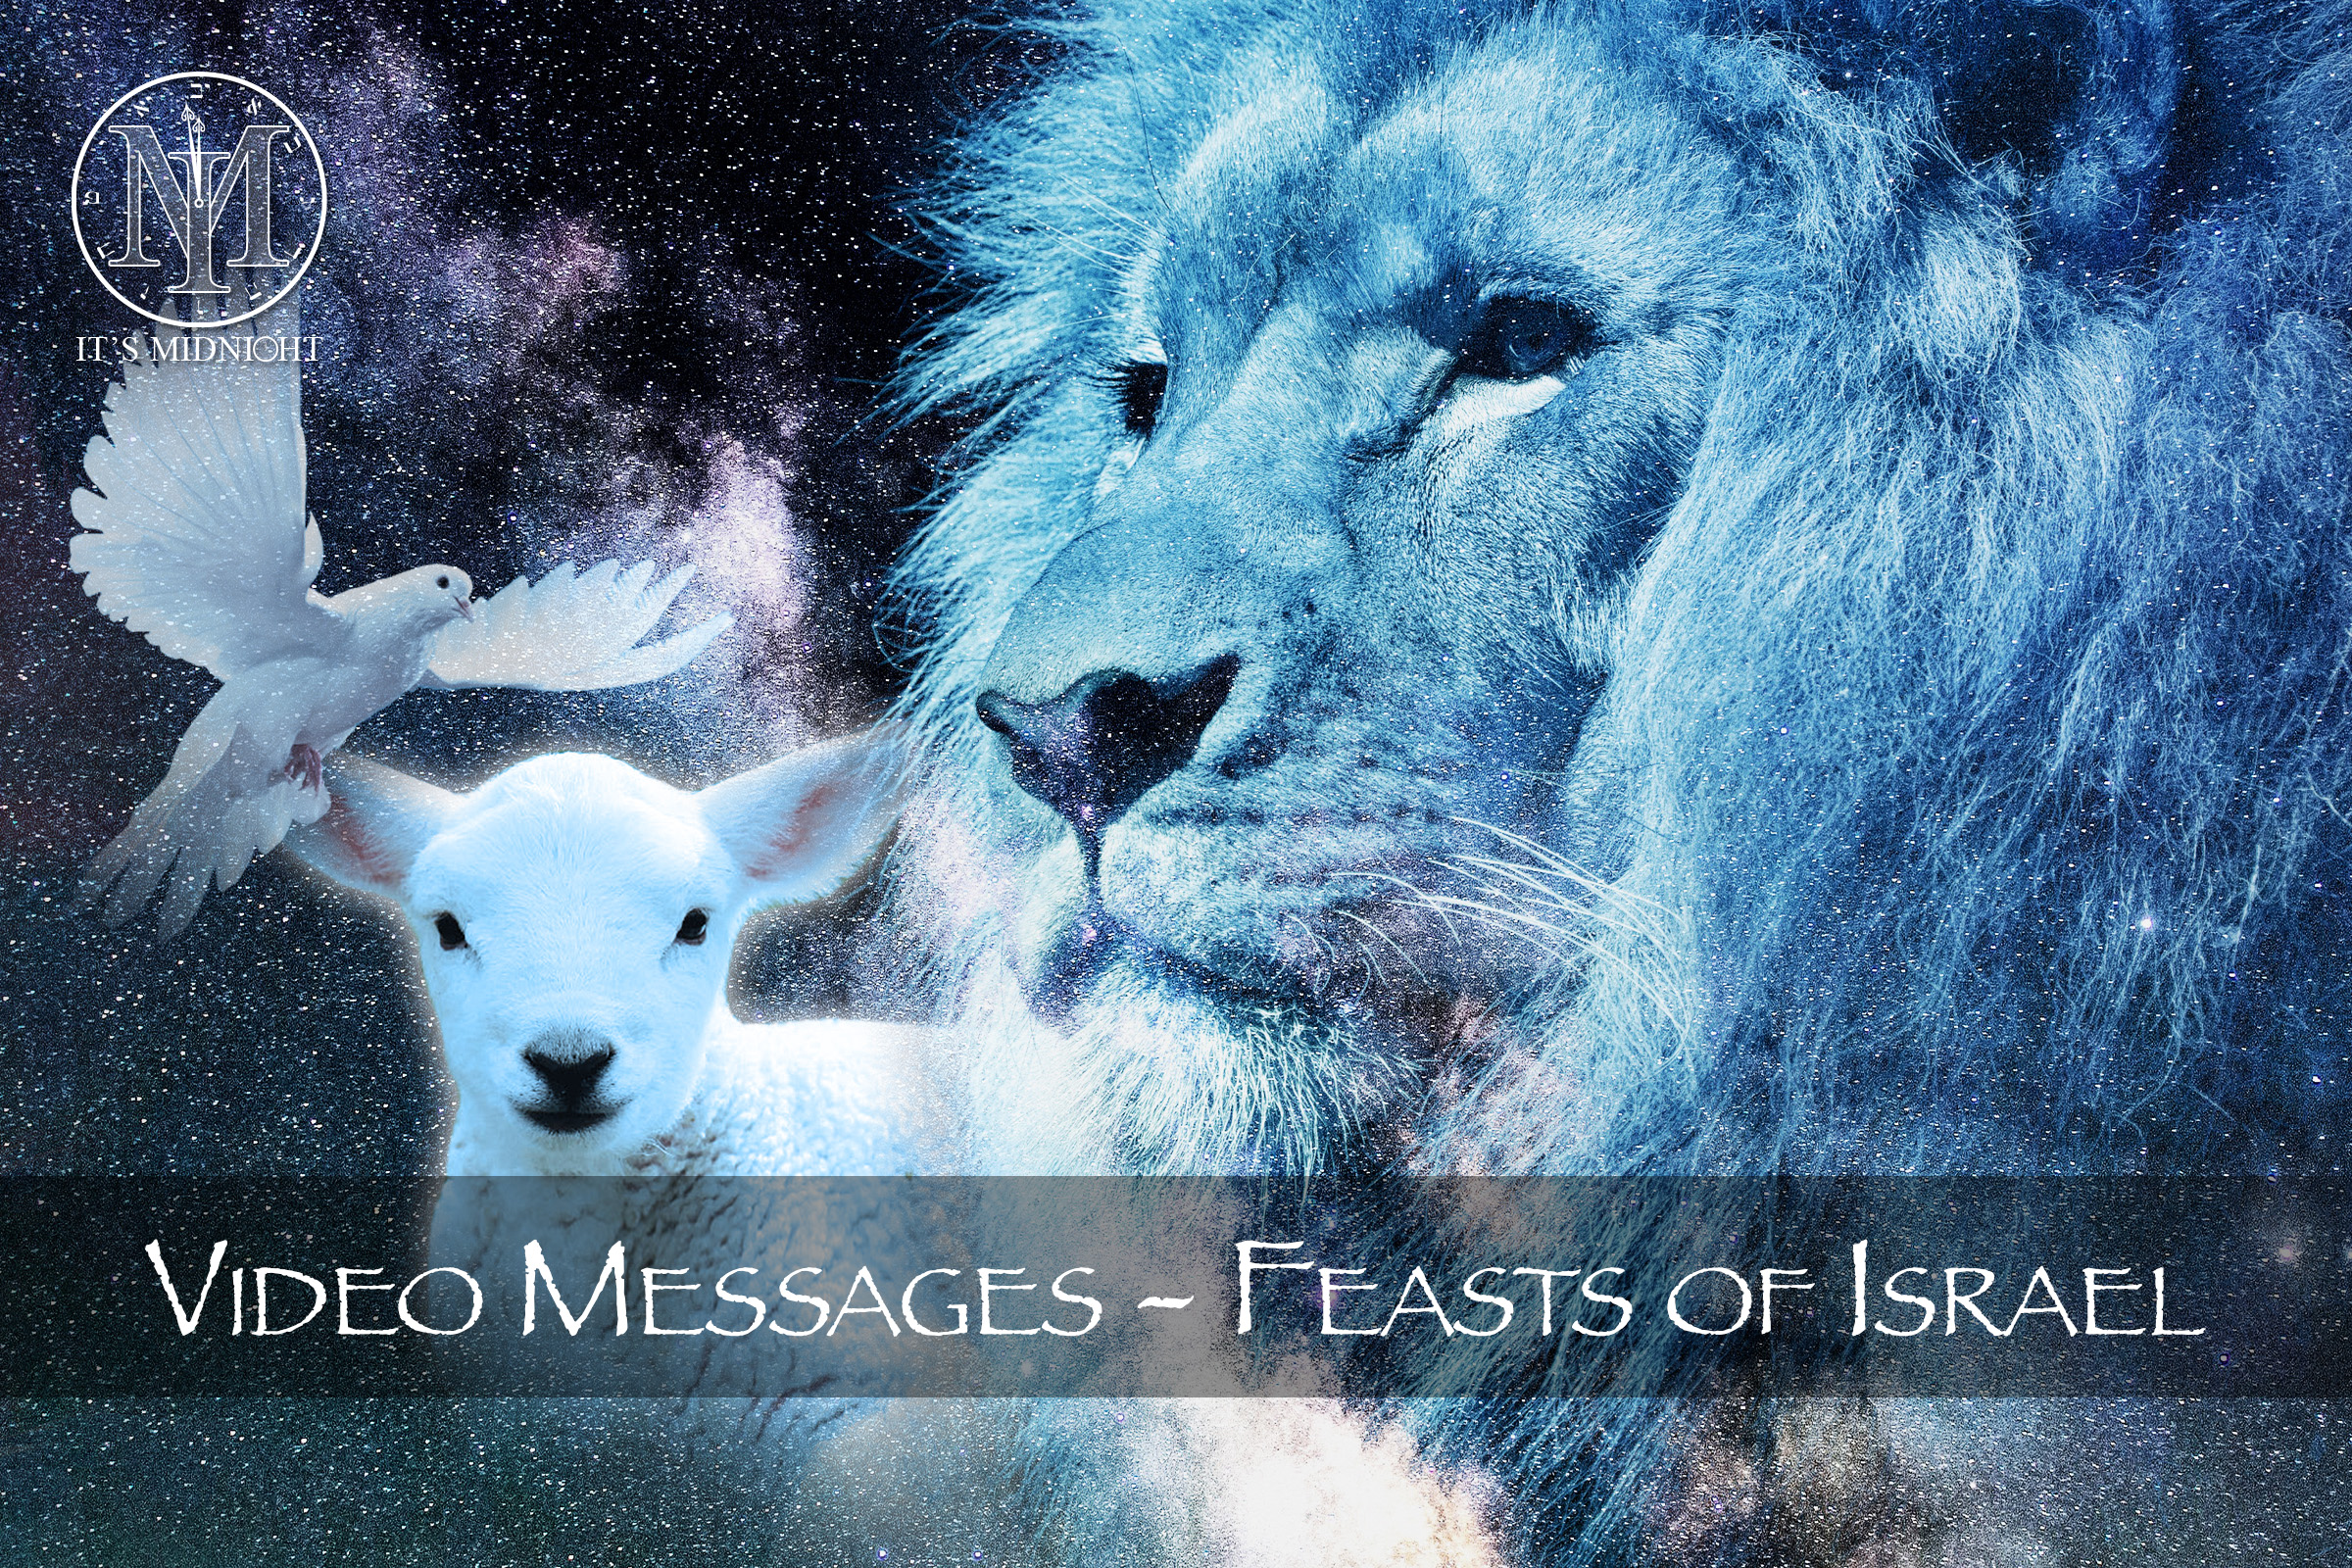 Feasts of Israel (Video Messages).jpg